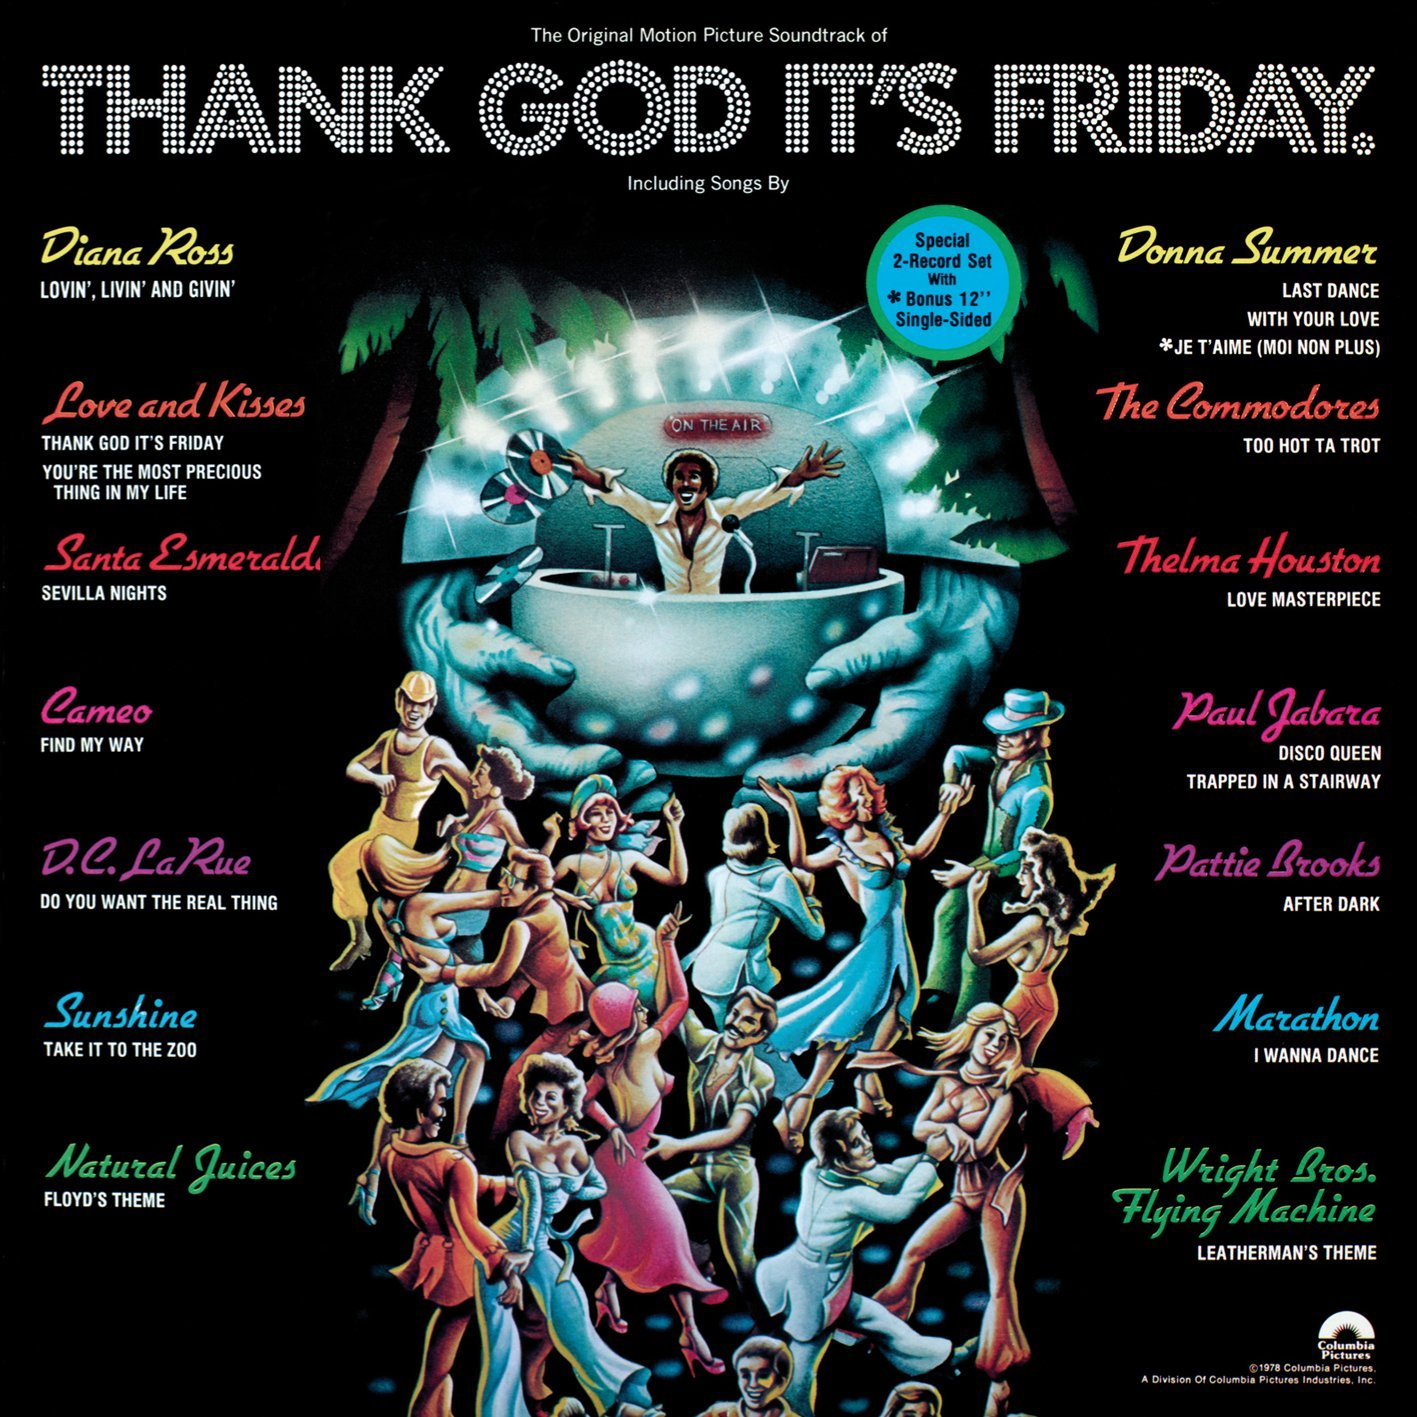 Thank God Its Friday Donna Summer Paul Jabara Thelma Houston Diana Ross Movie